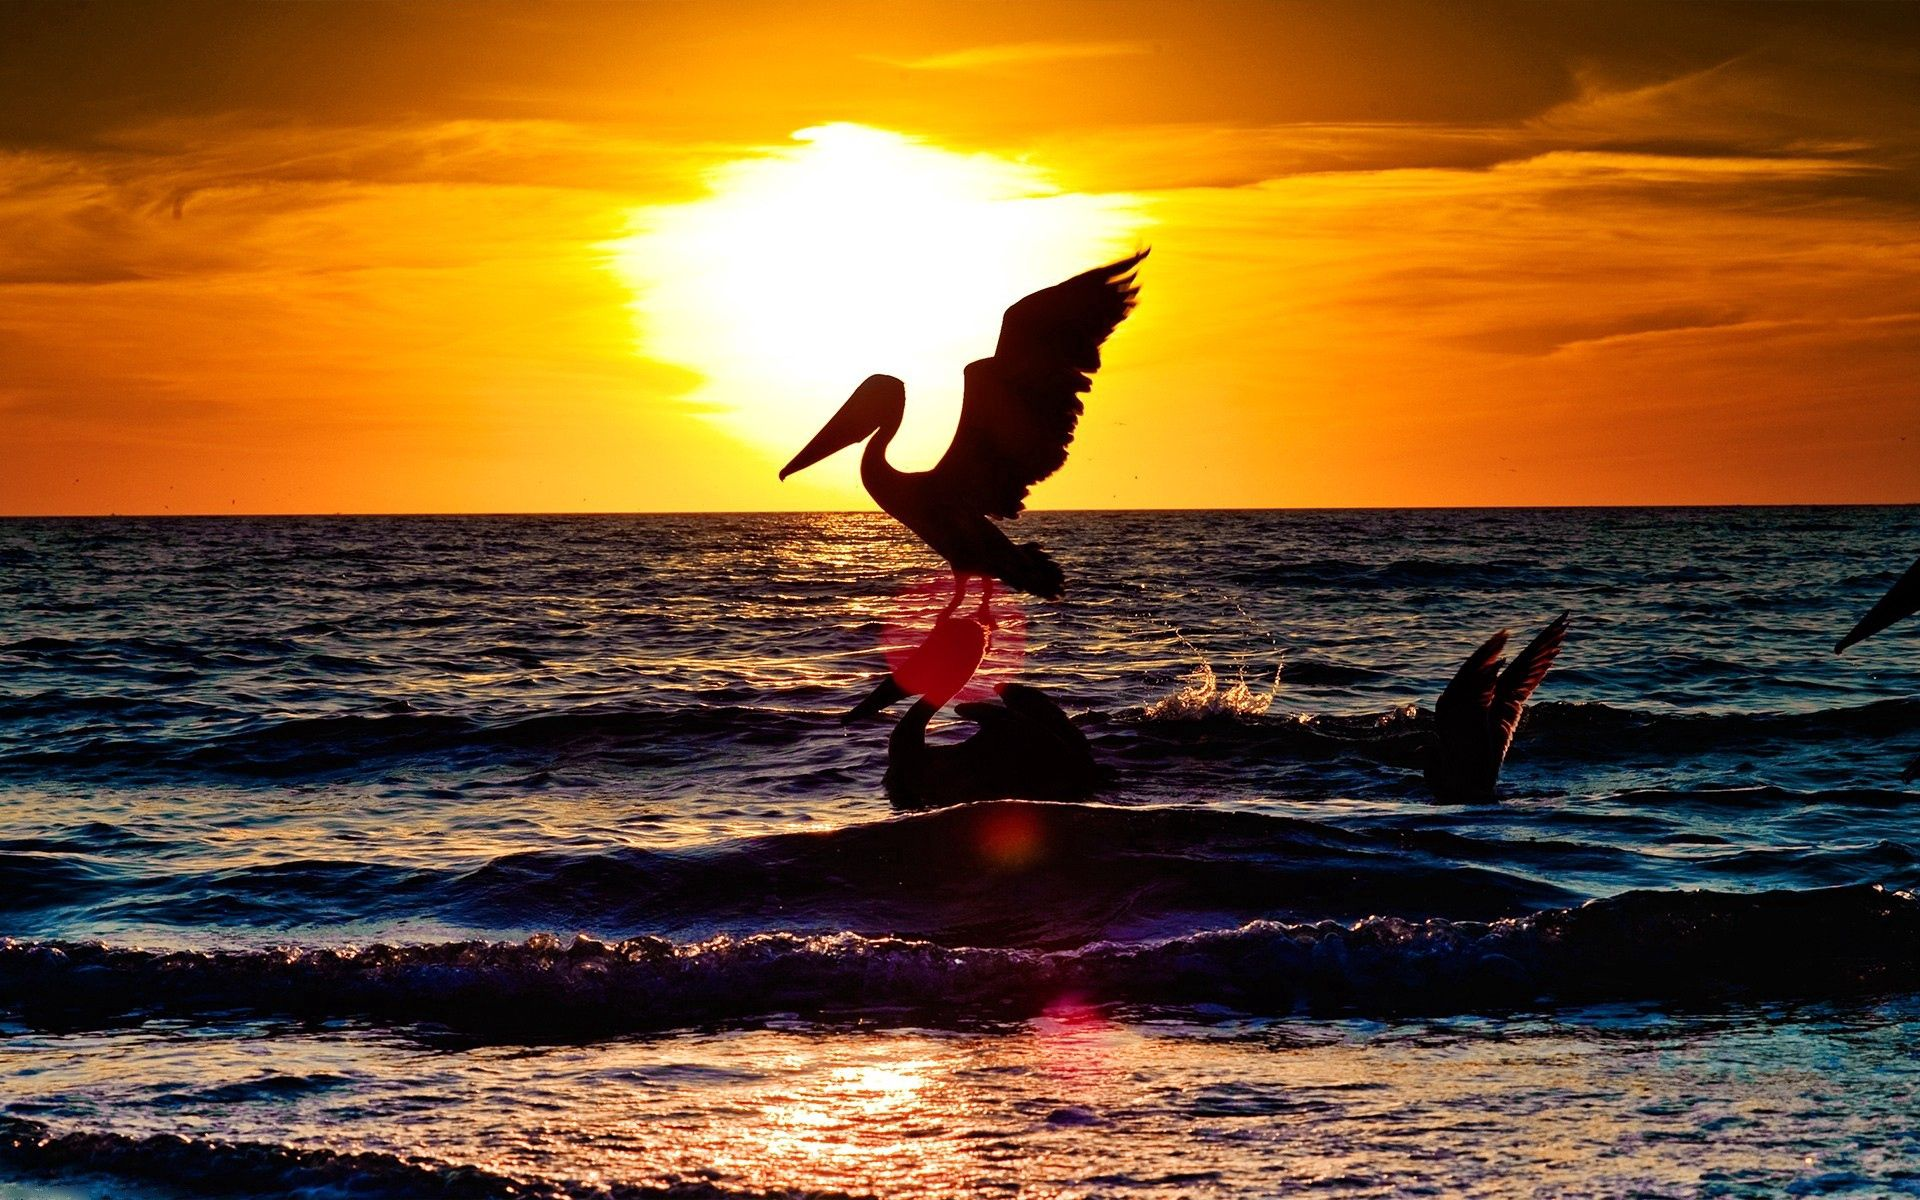 141961 download wallpaper Animals, Pelican, Stork, Sea, Flight, Sunset, Landscape screensavers and pictures for free